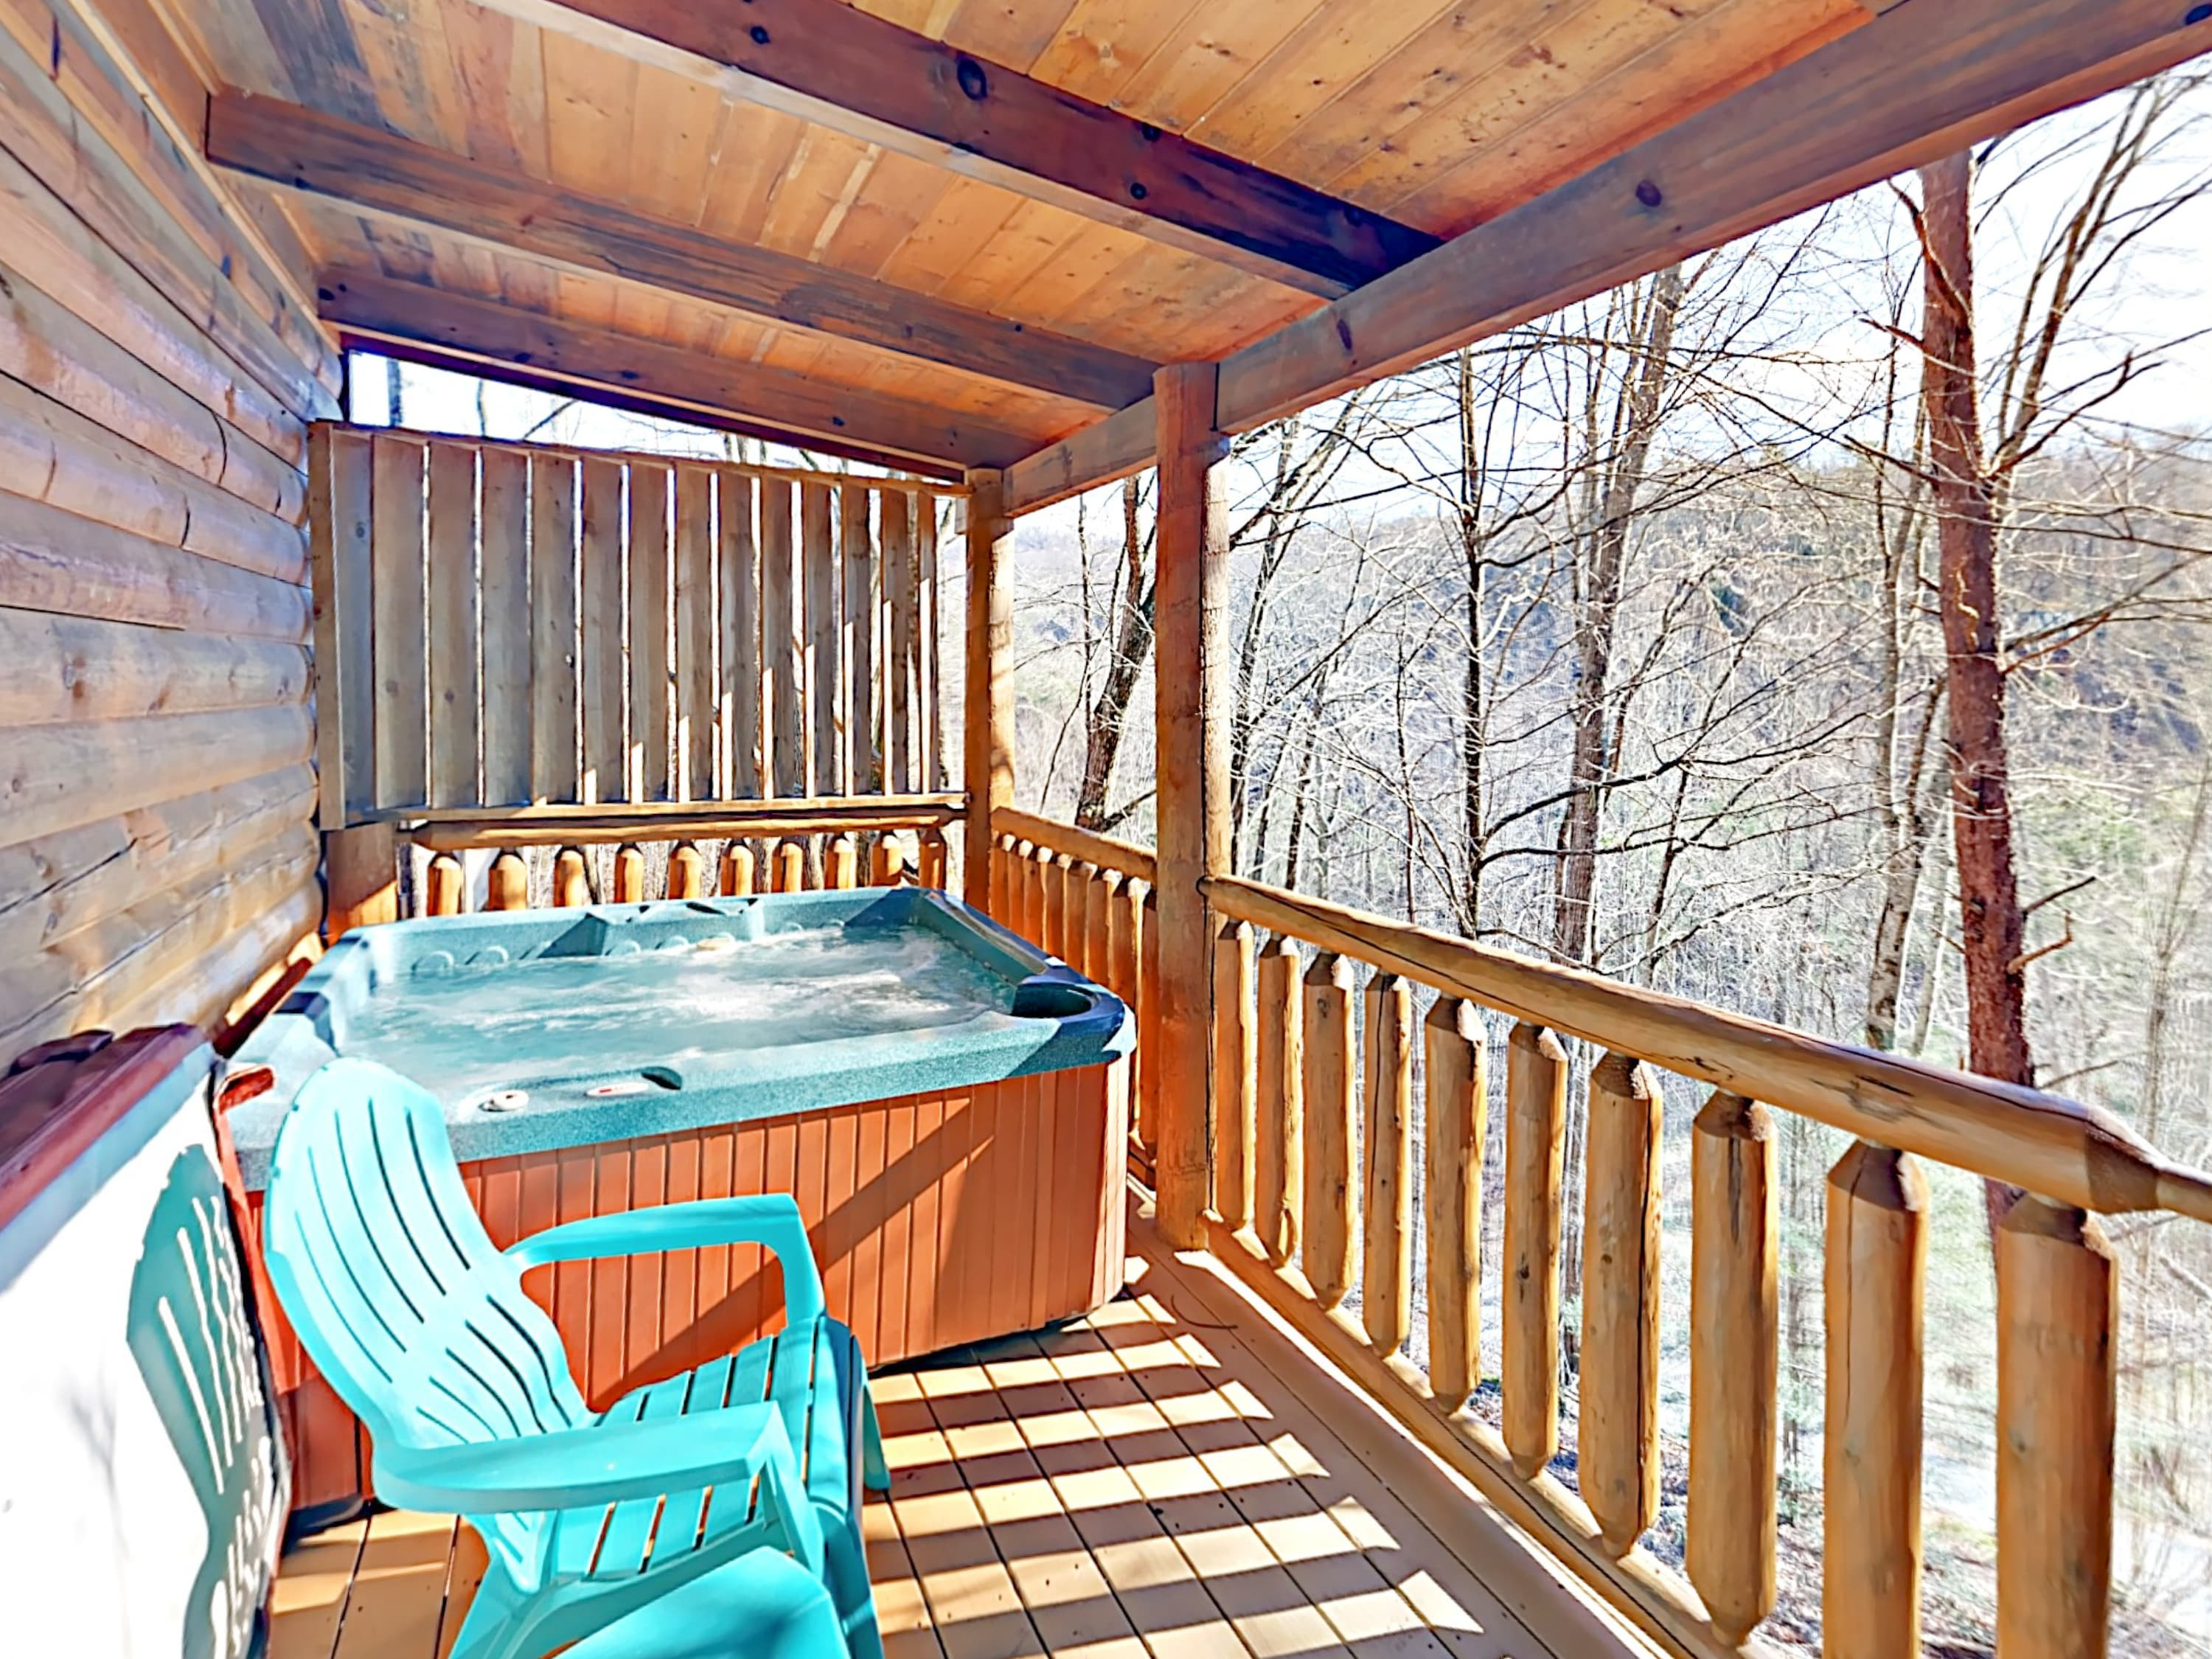 Slip into the bubbling hot tub for a relaxing soak with a view on the covered deck.